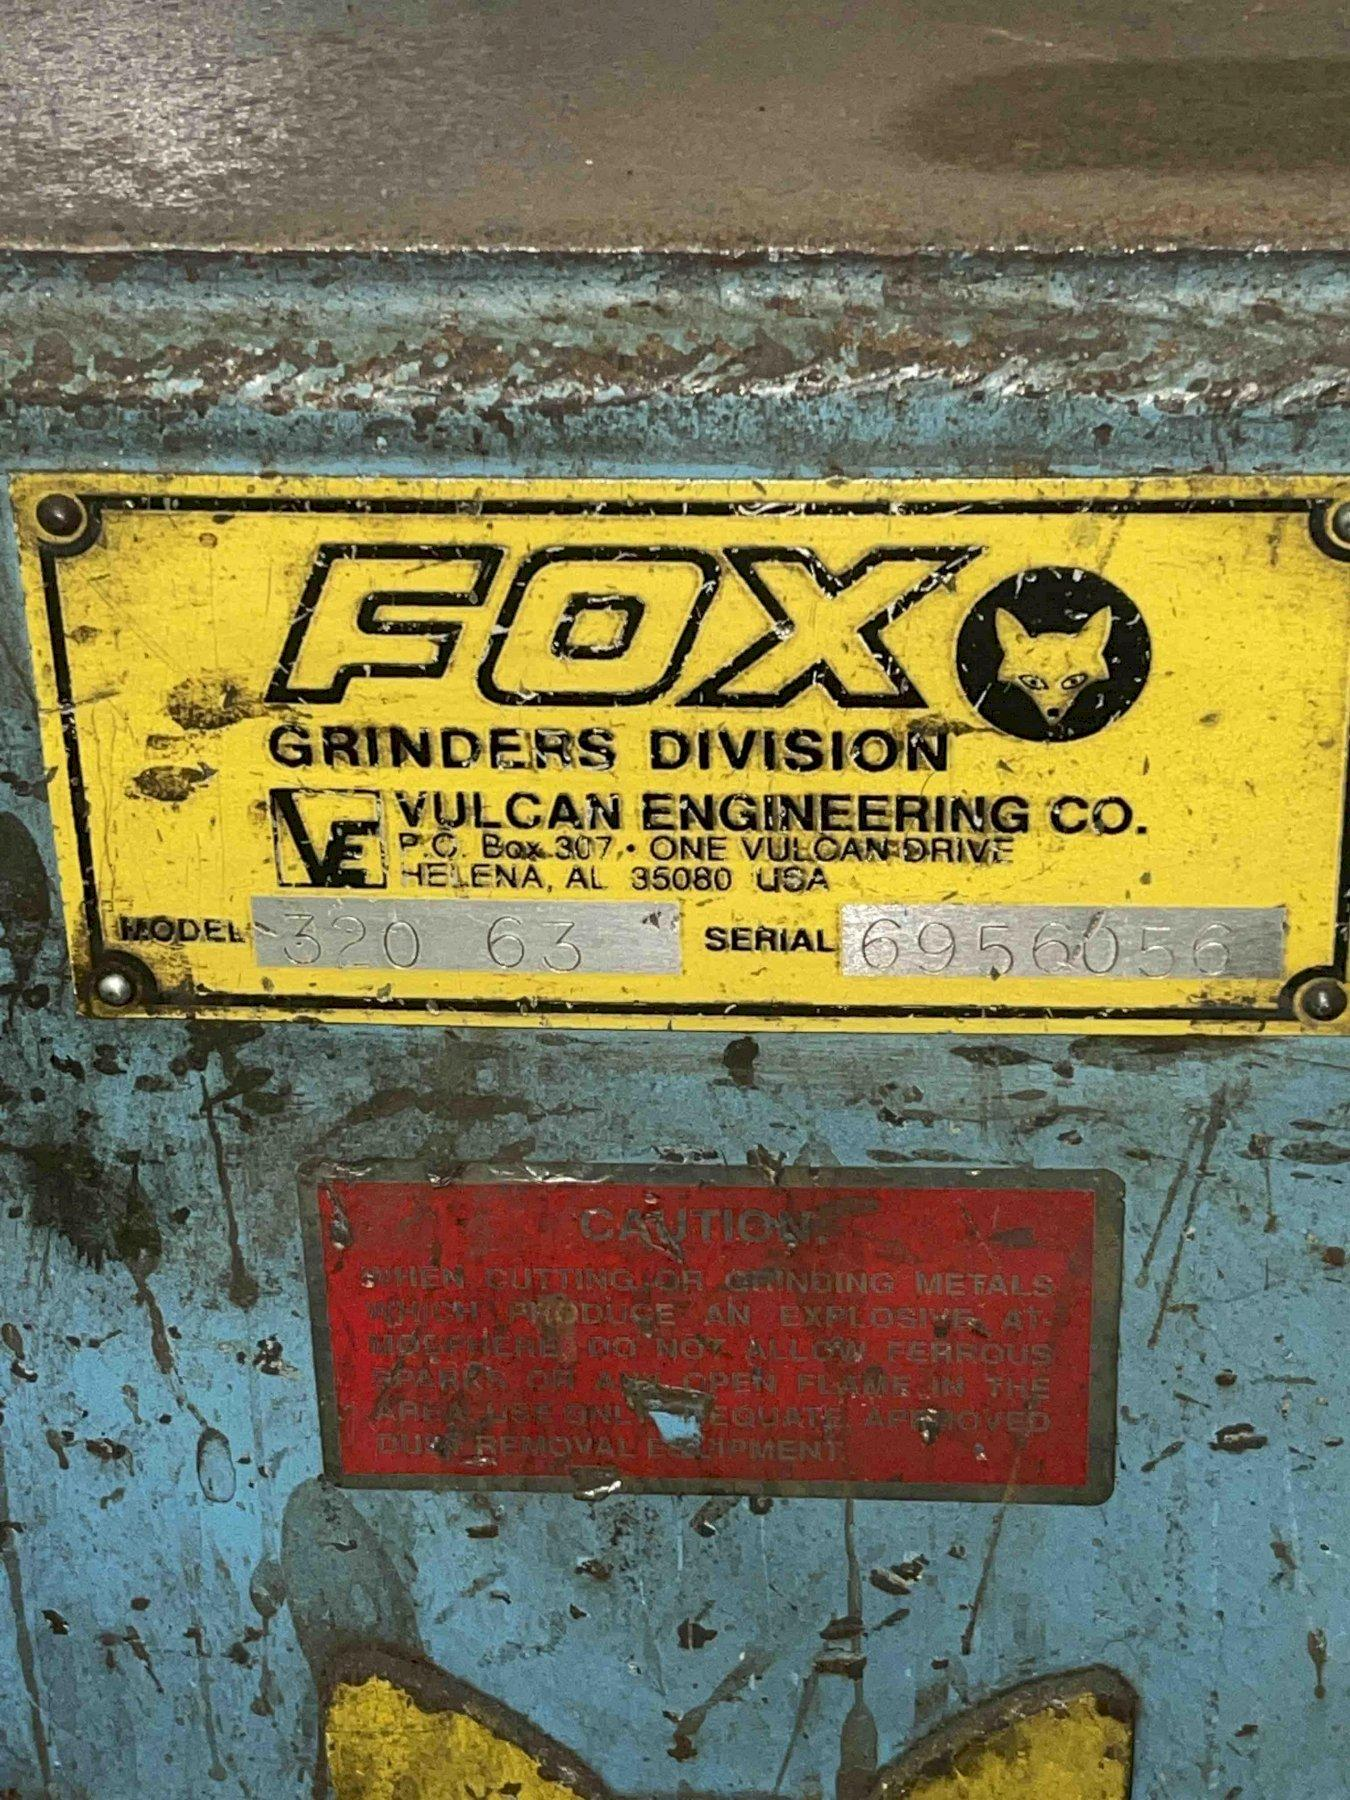 """Fox model 320-63 20"""" double end grinder s/n 6956056, note: only using one side as a belt grinder"""